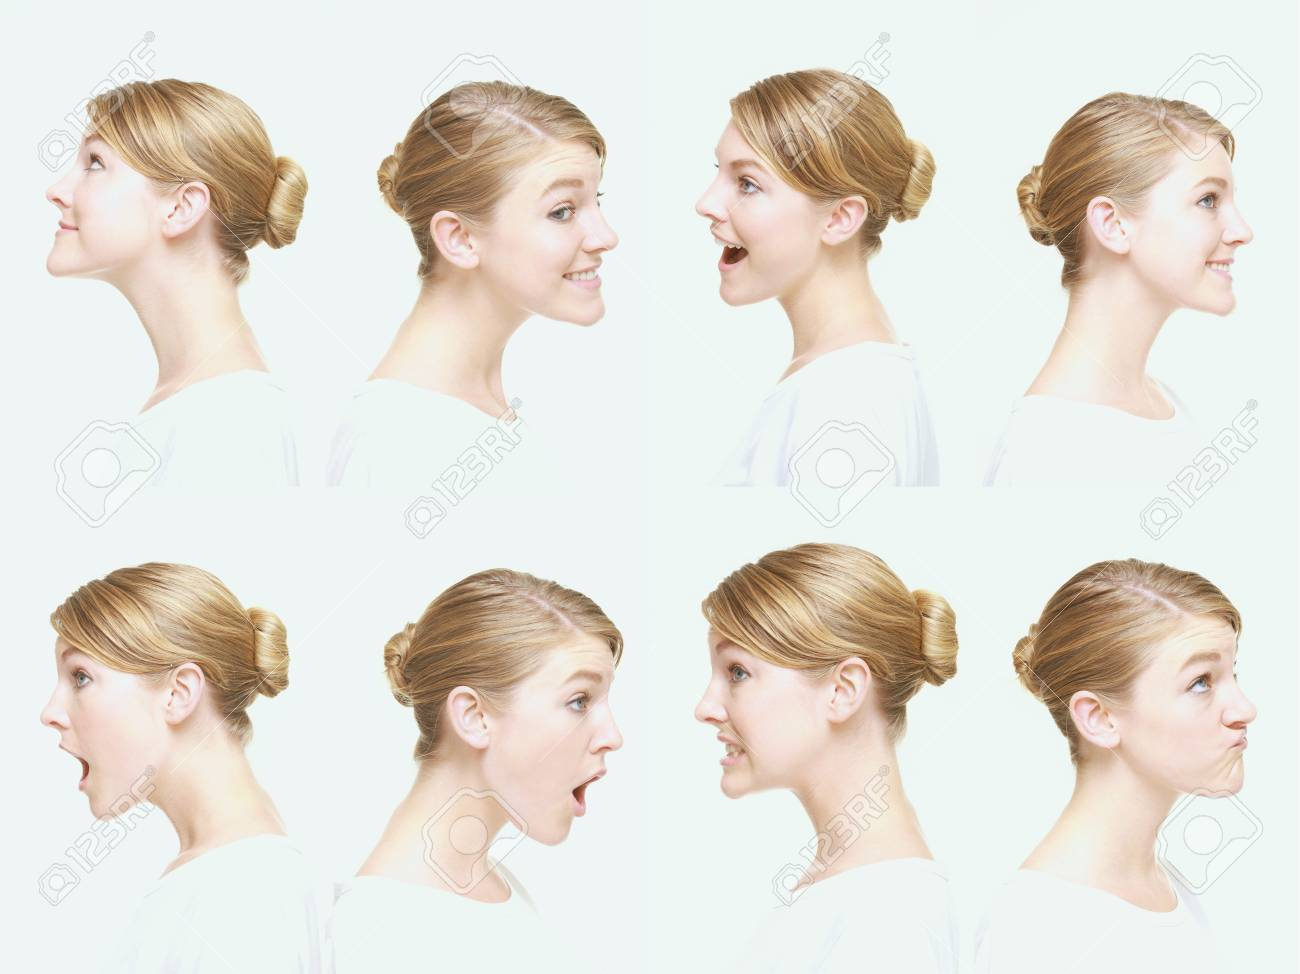 Montage of woman pulling different expressions Stock Photo - 13149249